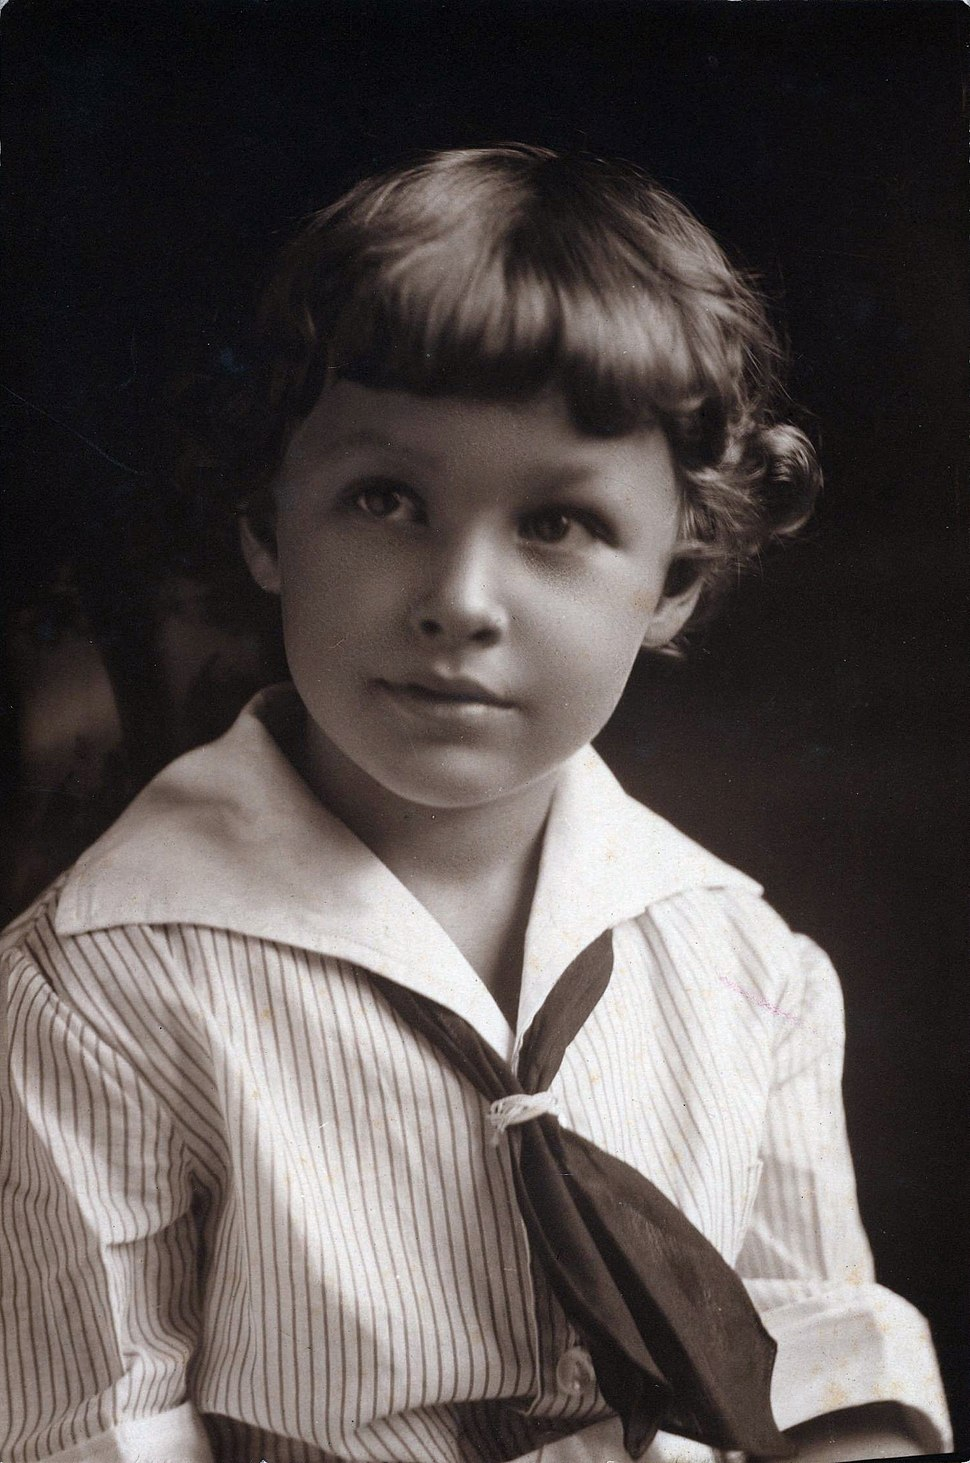 Houghton - MS Thr 553 (6). Tennessee Williams age 5